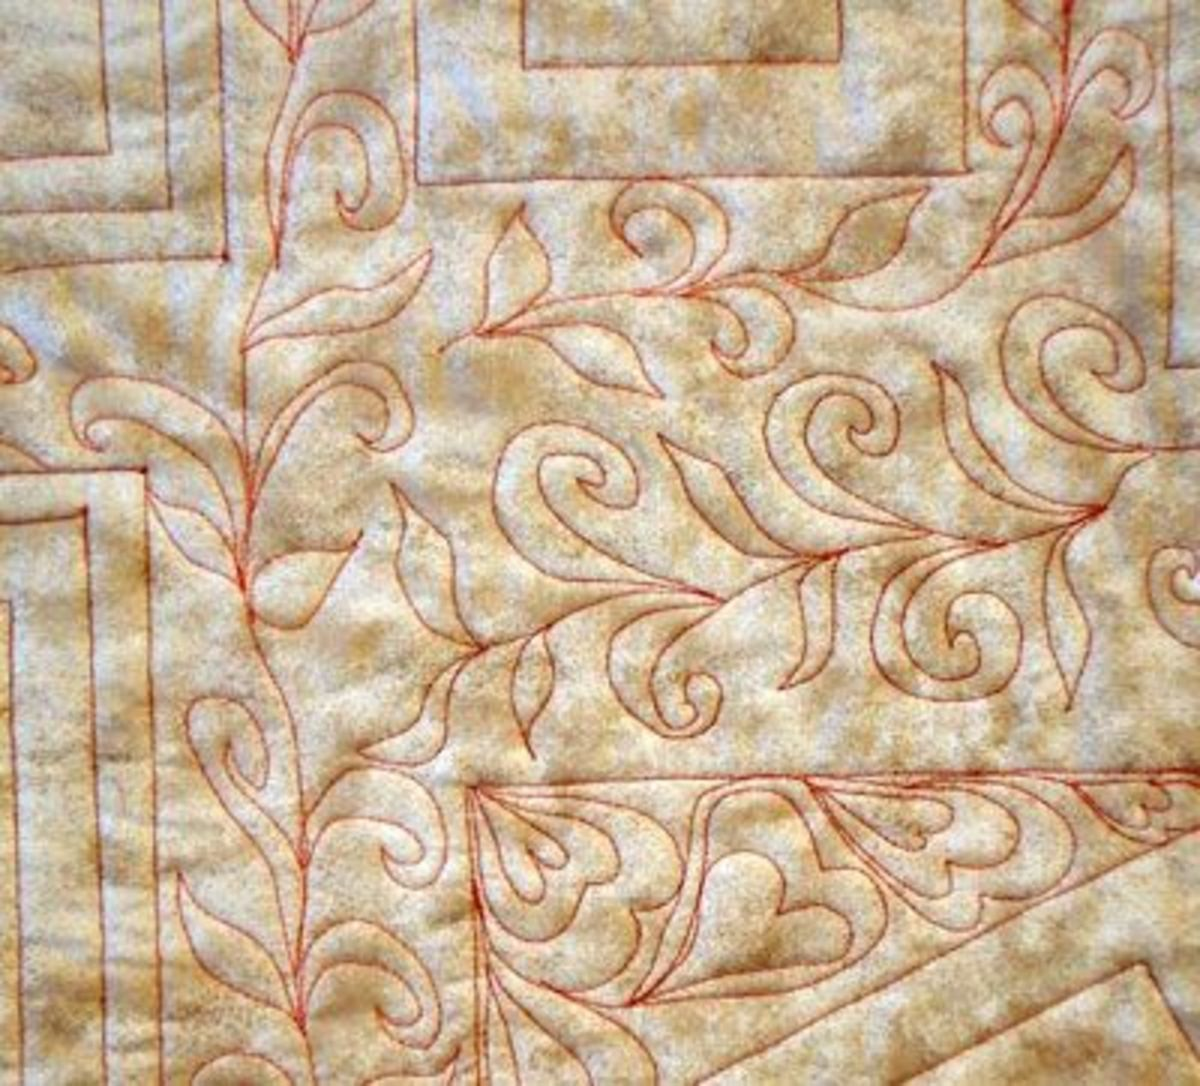 Detail of free machine stitching on the back of a quilt